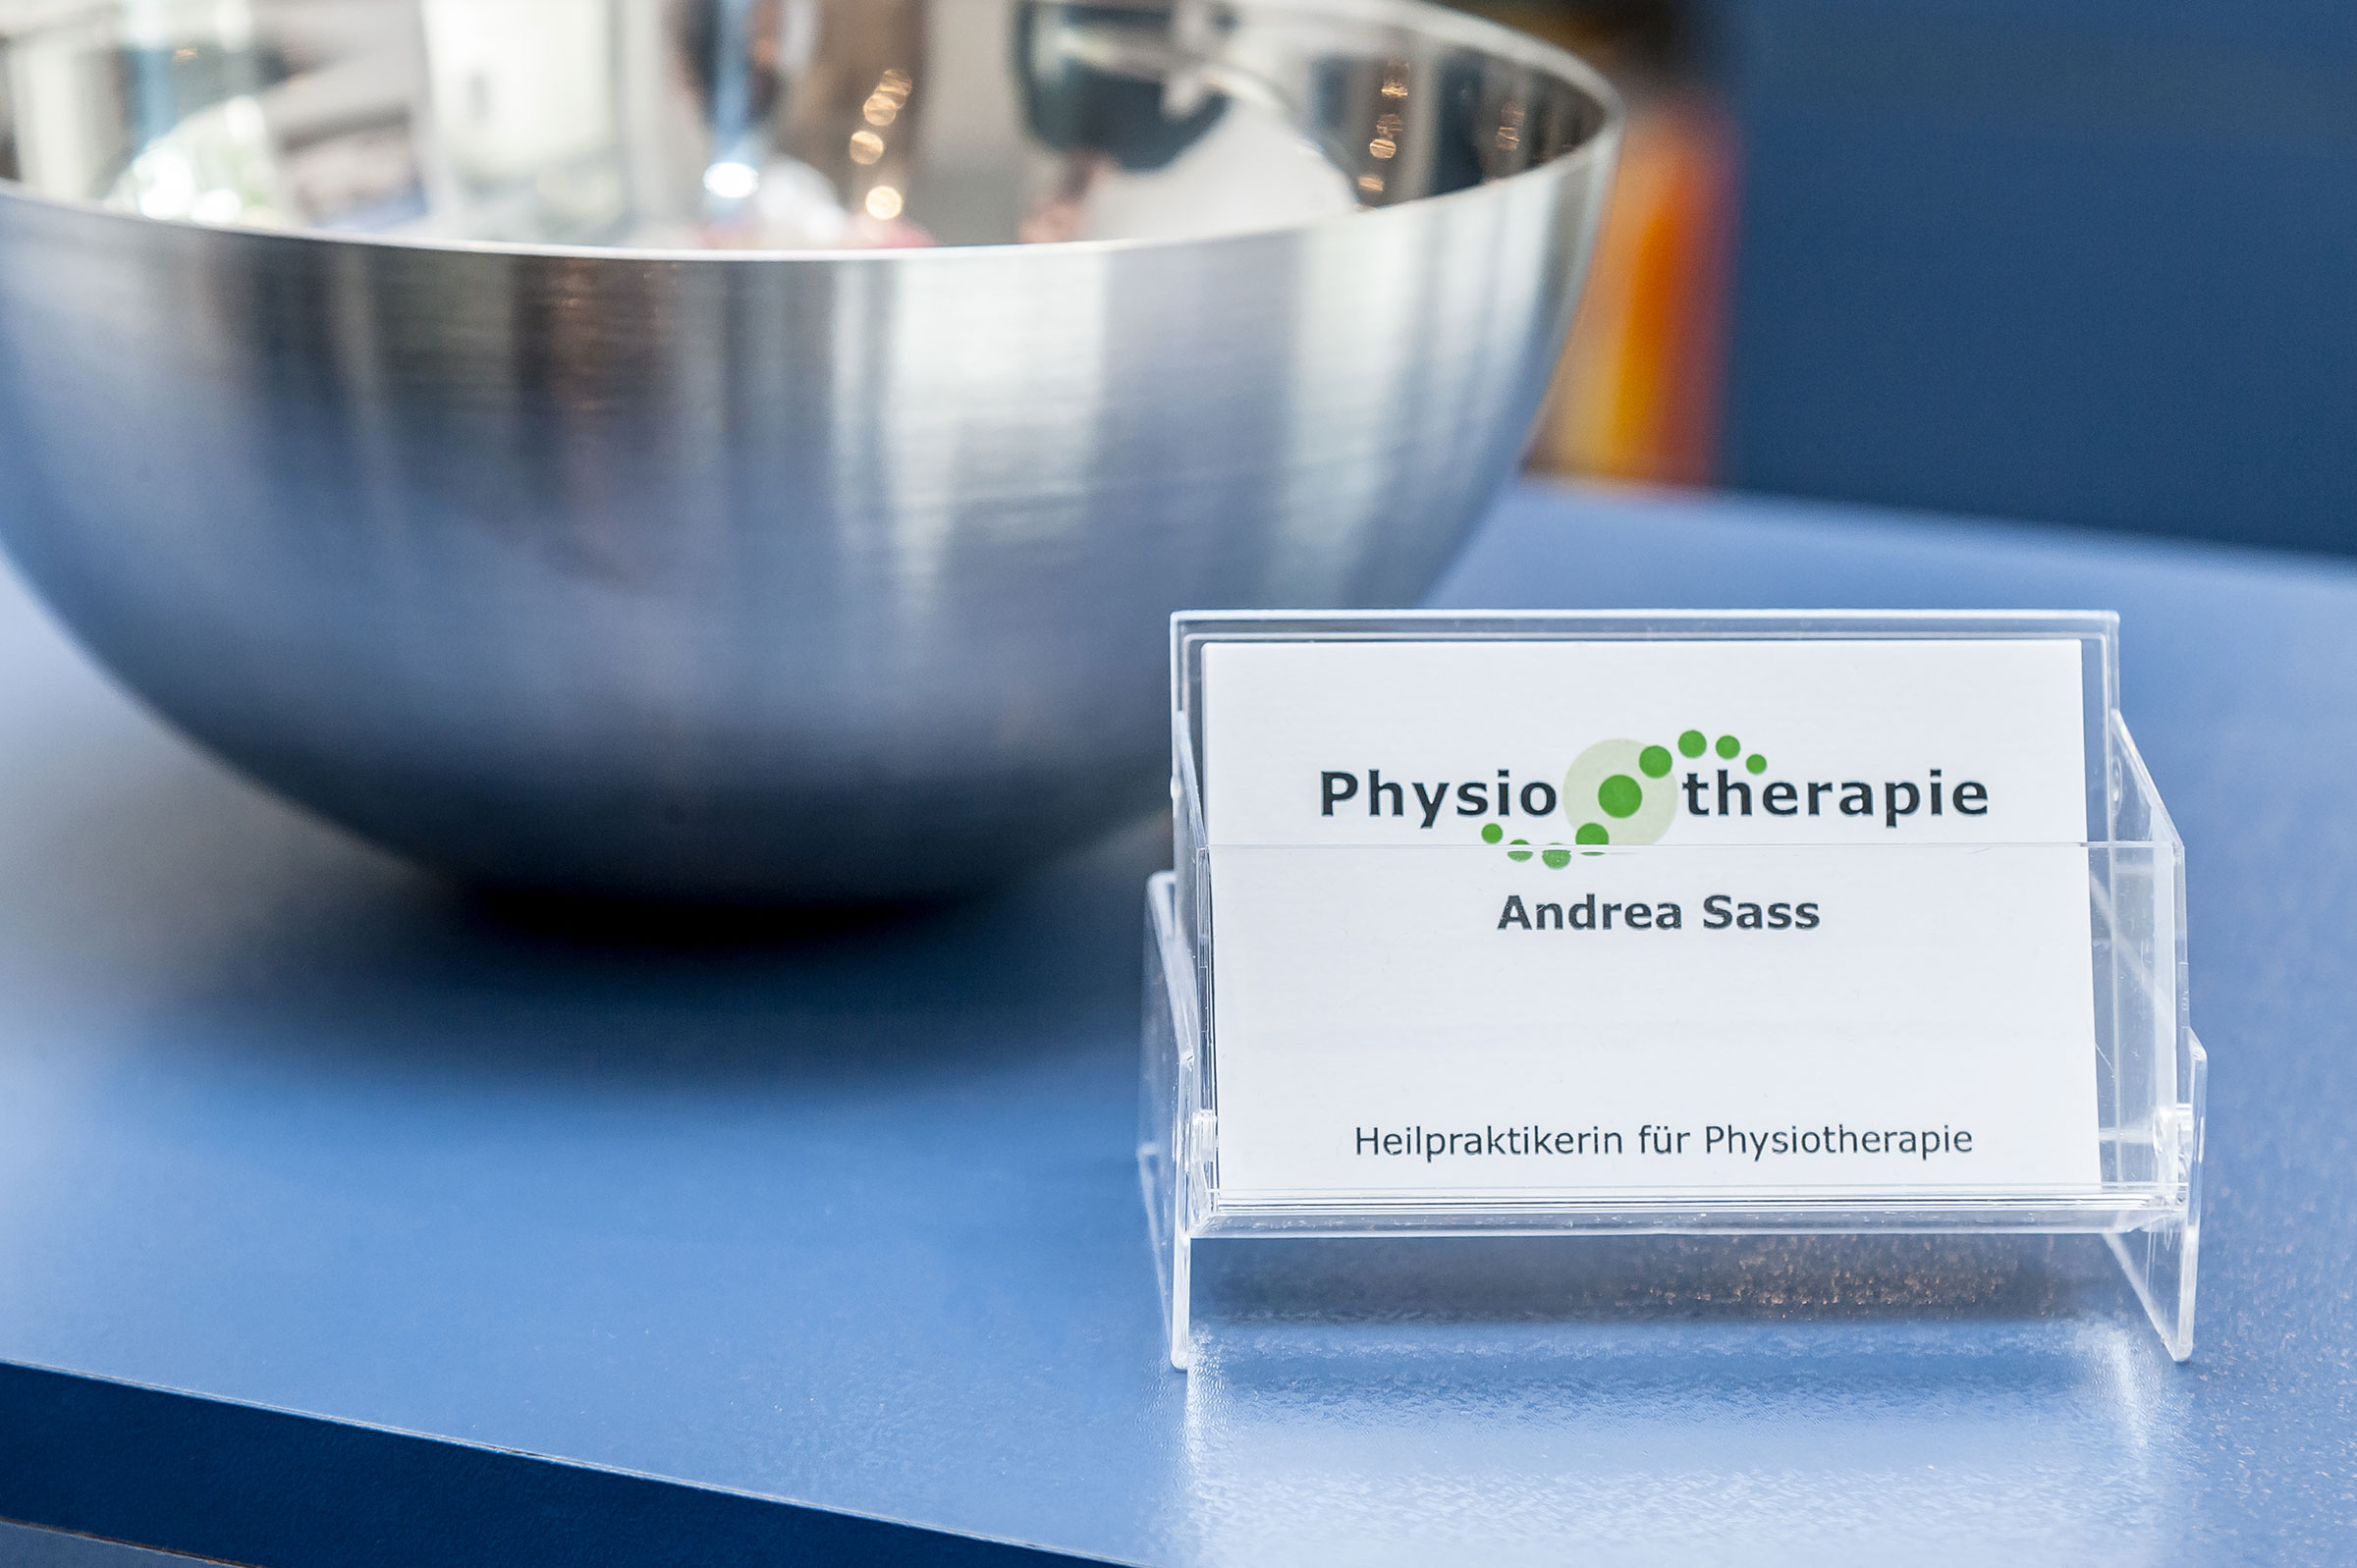 Physiotherapie Andrea Sass